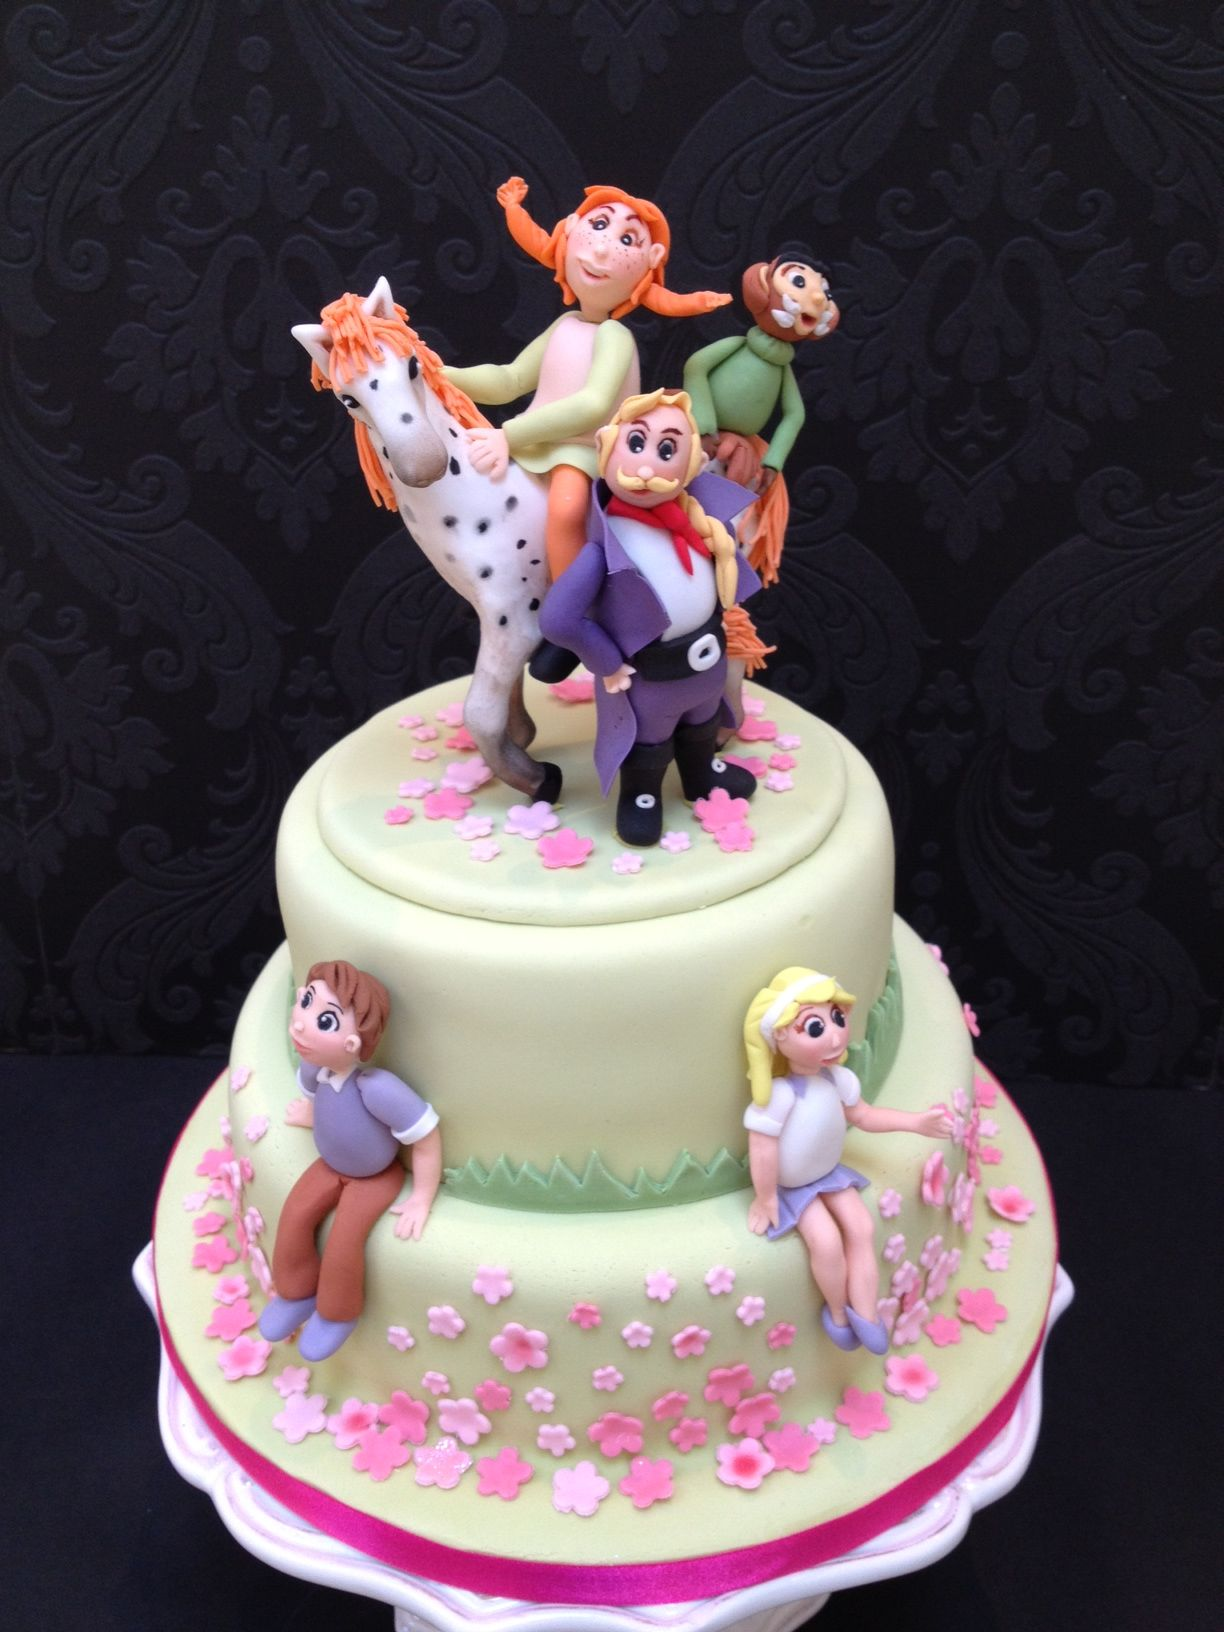 Cool Cakes London Continues To Impress Pippi Longstocking How Long Did This Take I Bet You The Little Girl Who Receives It Was Over The Moon Www Coolc Kaker